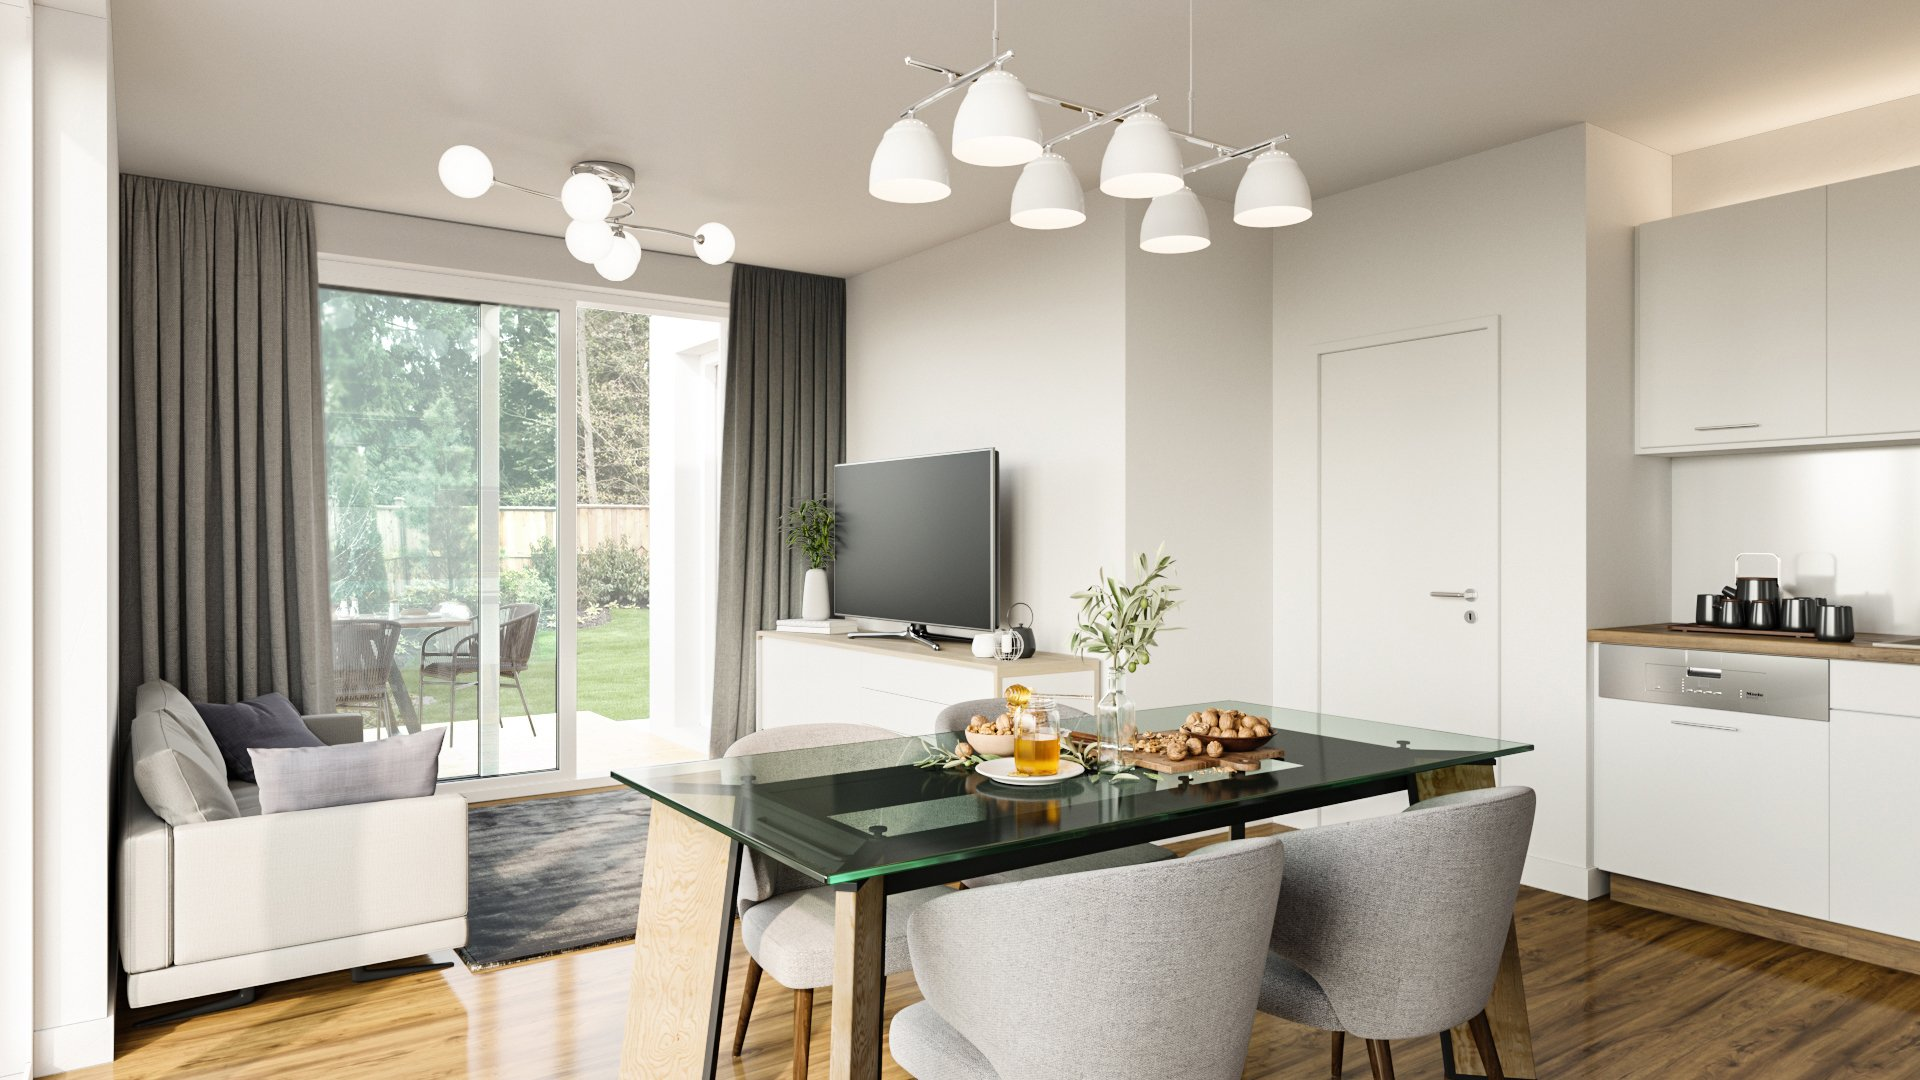 CG Image of a Living Room With Stylish Design